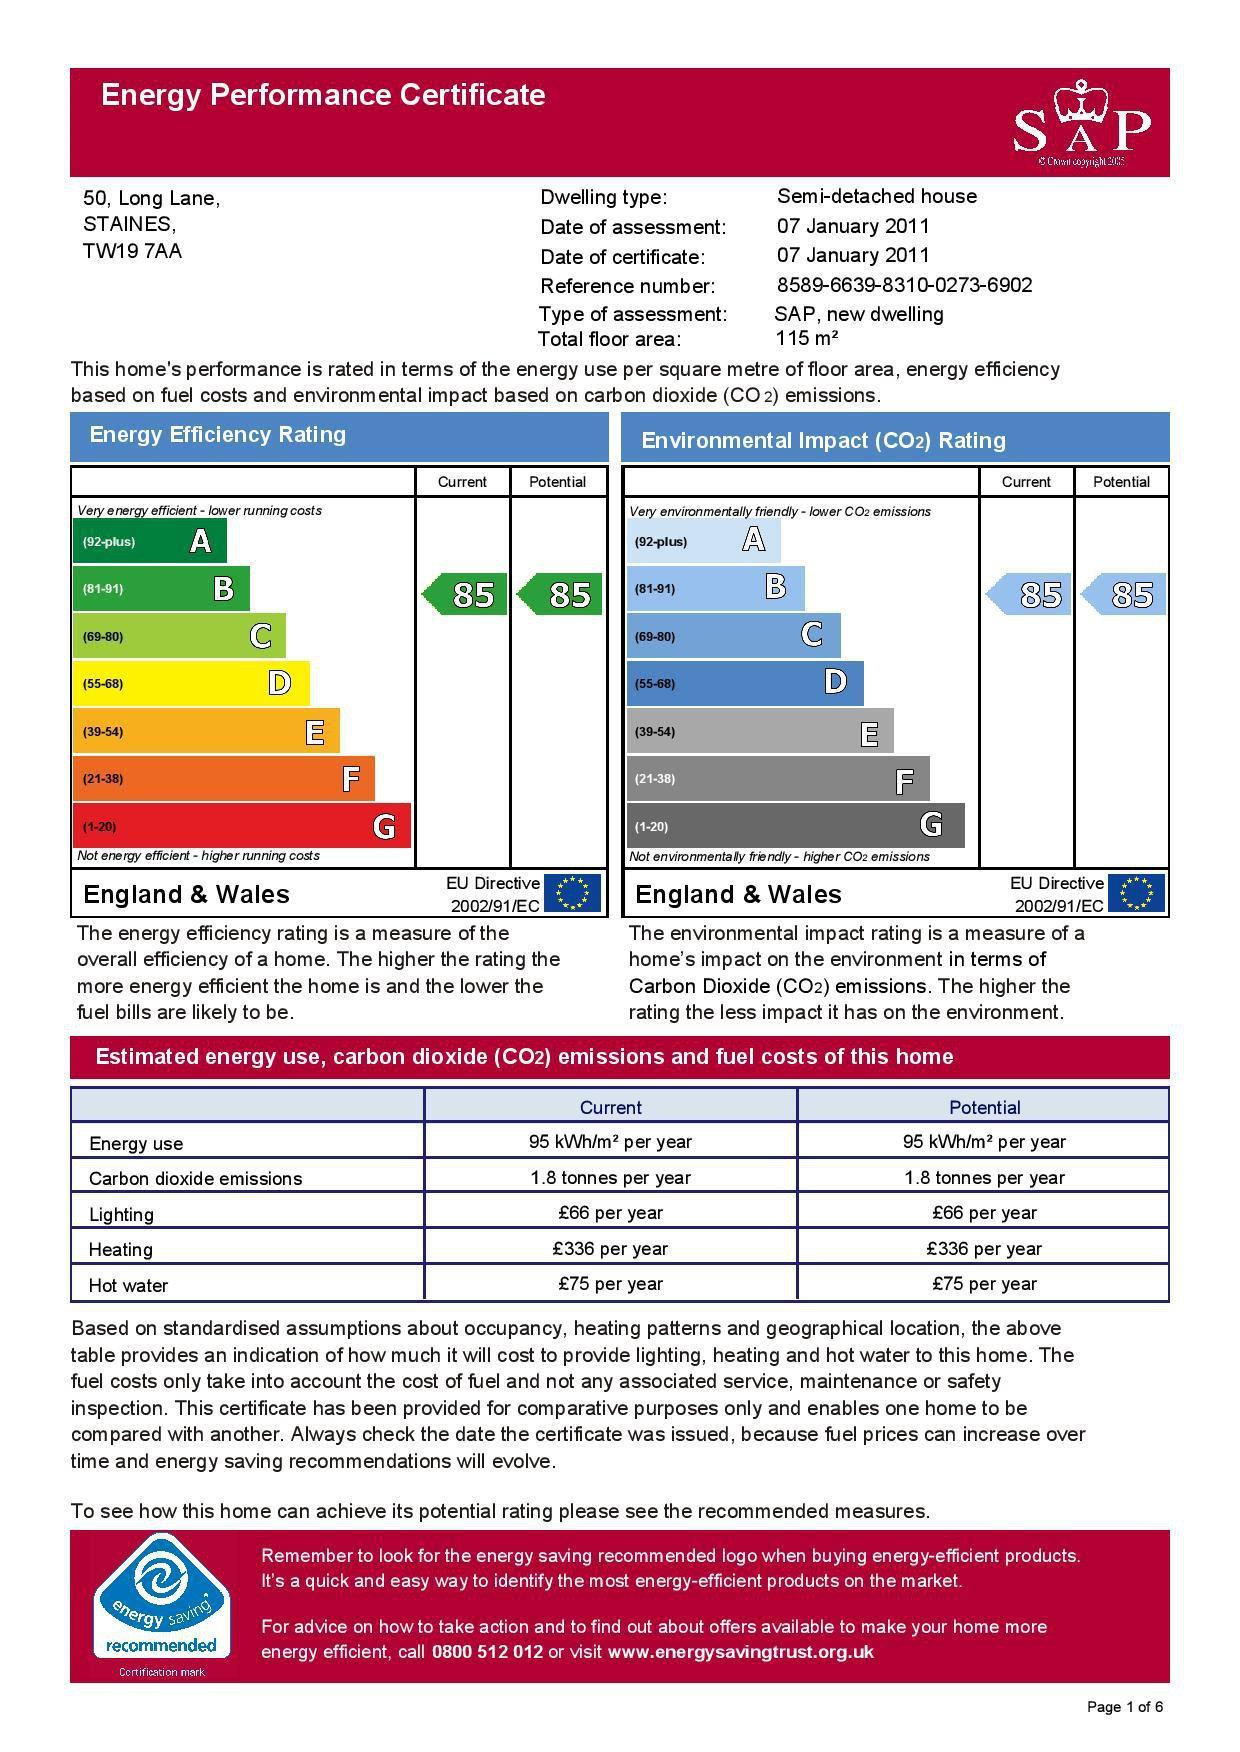 EPC Graph for 50 Long Lane, Stanwell, Middlesex TW19 7AA